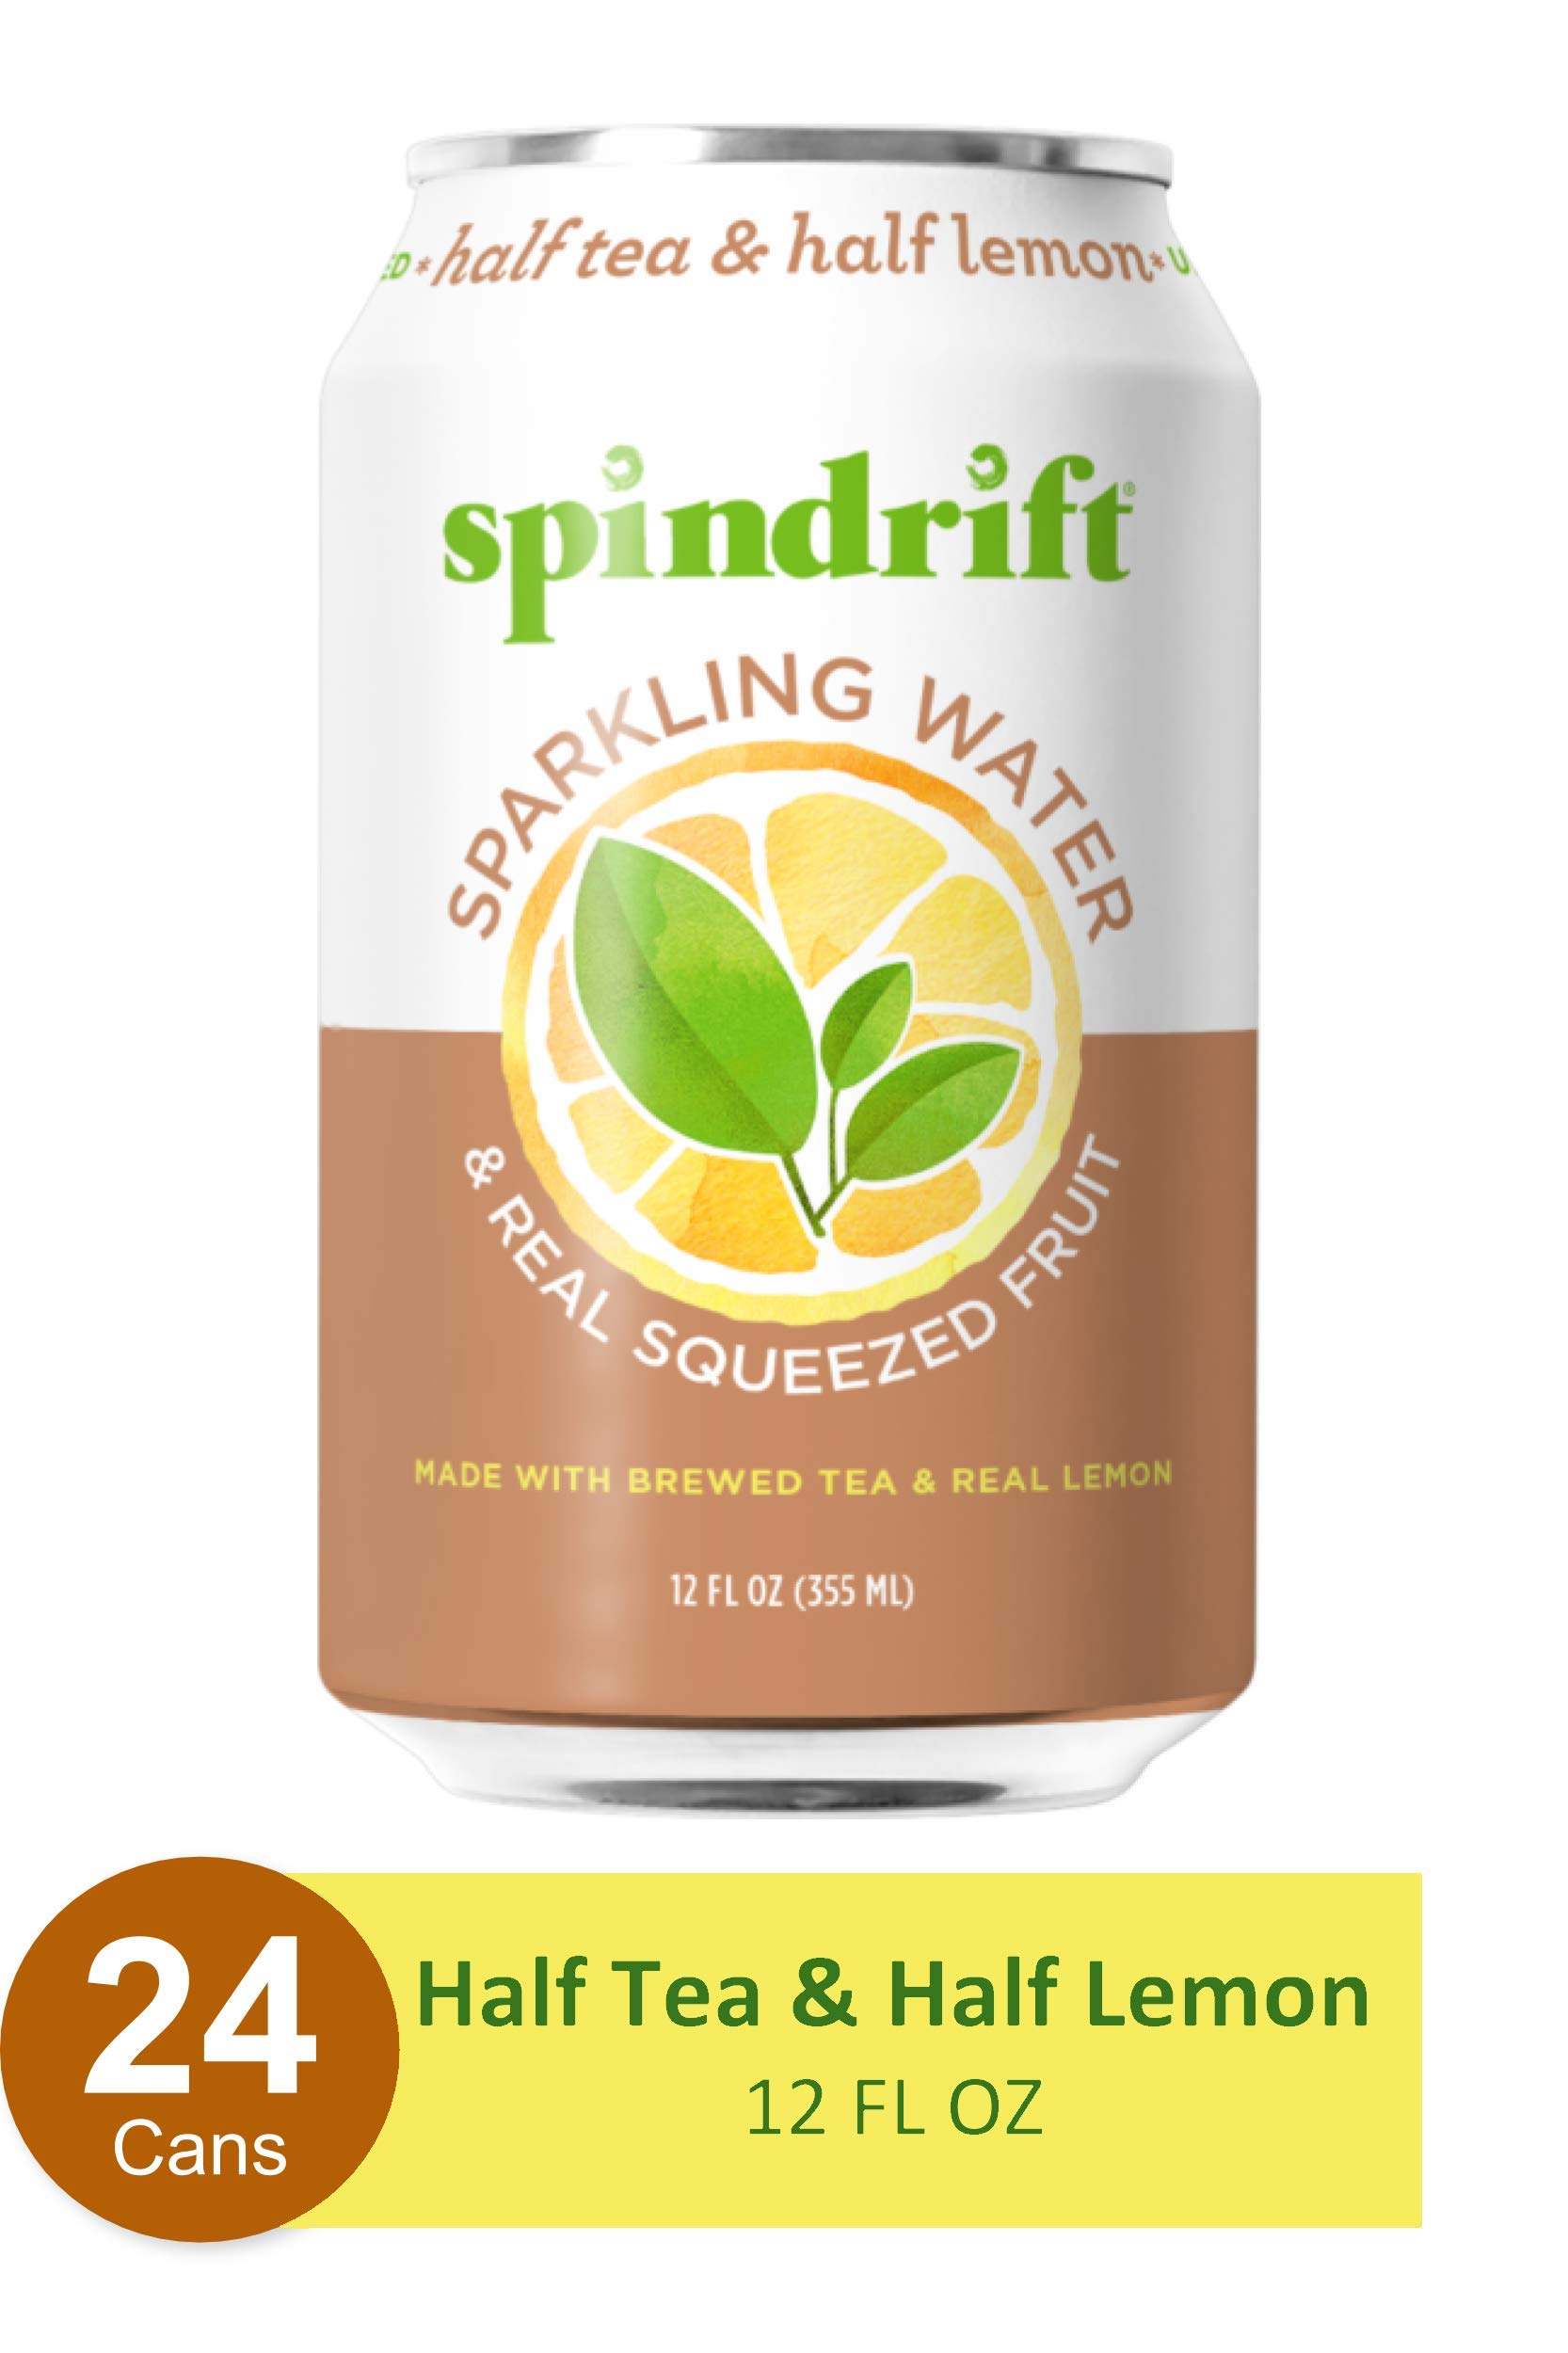 Spindrift Sparkling Water,  Half Tea & Half Lemon Flavored, Made with Real Squeezed Fruit, 12 Fl Oz Cans, Pack of 24 (Only 5 Calories per Seltzer Water Can)